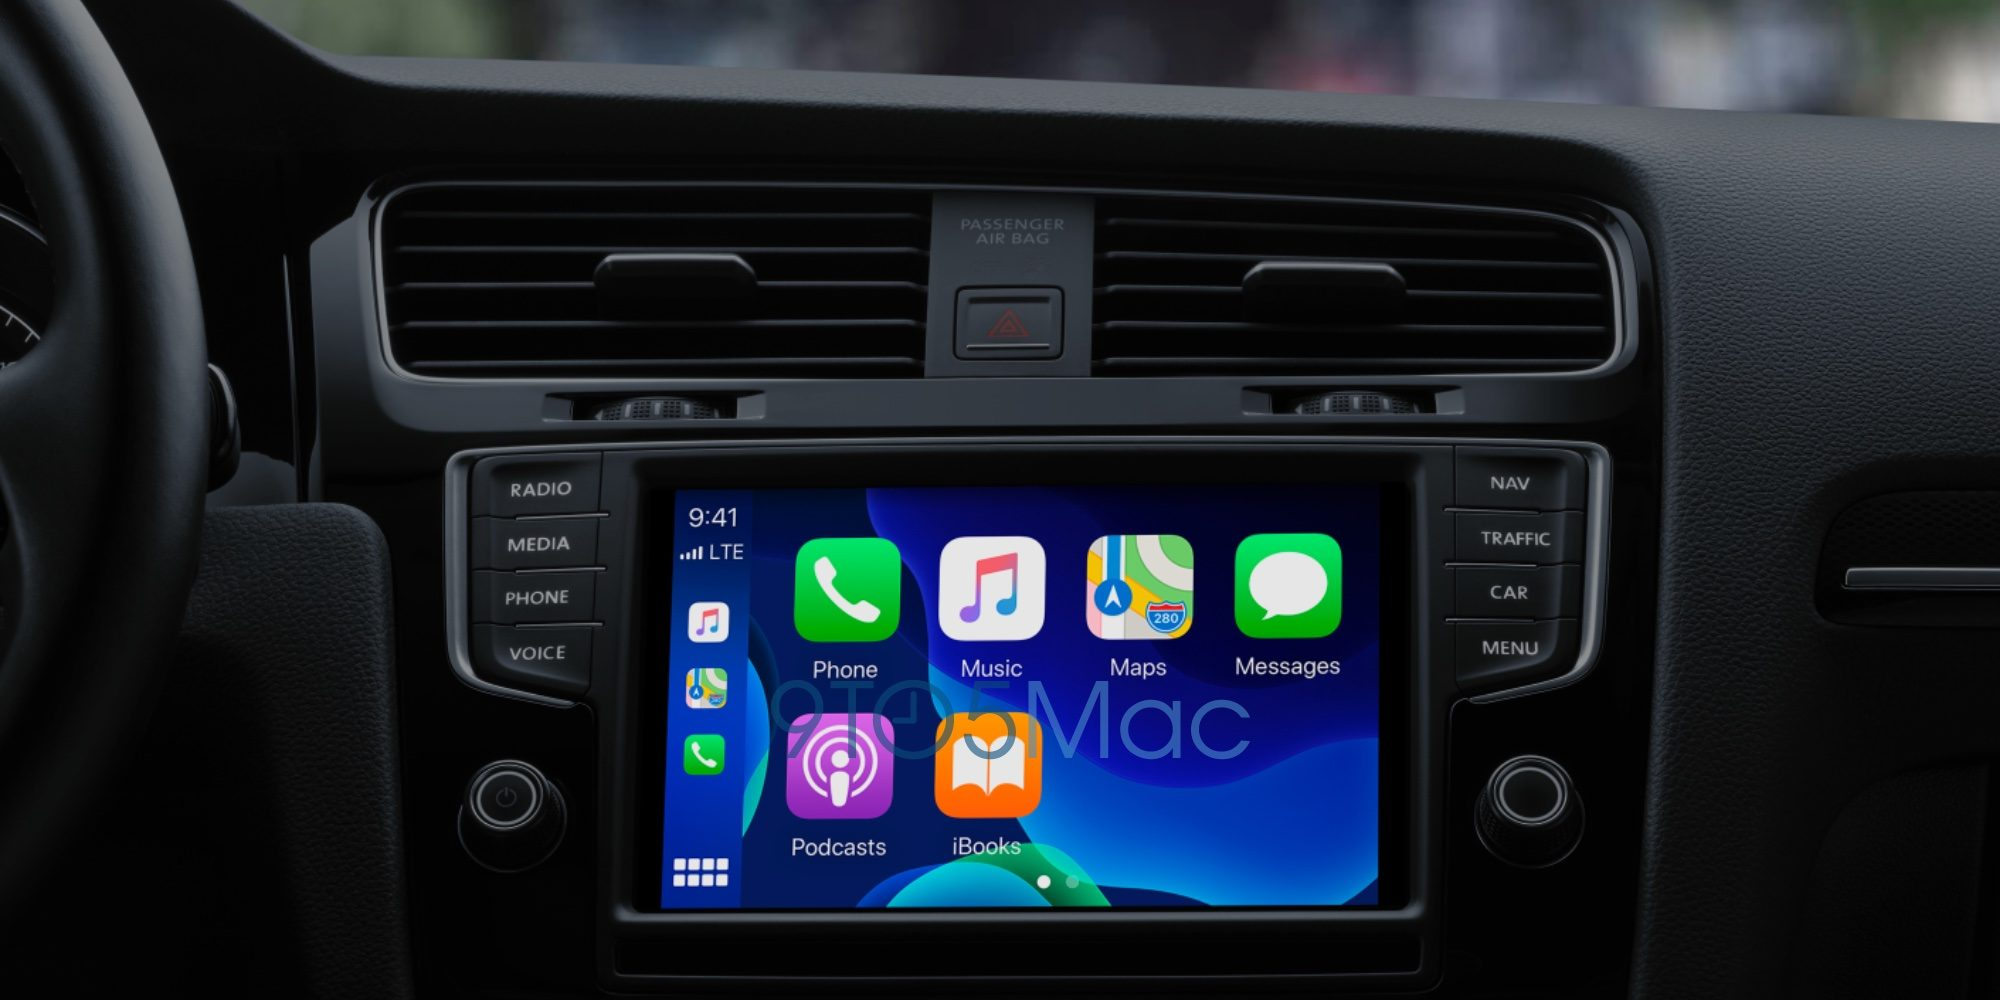 iOS 14: CarPlay wallpapers, deeper Apple Store integration in Maps